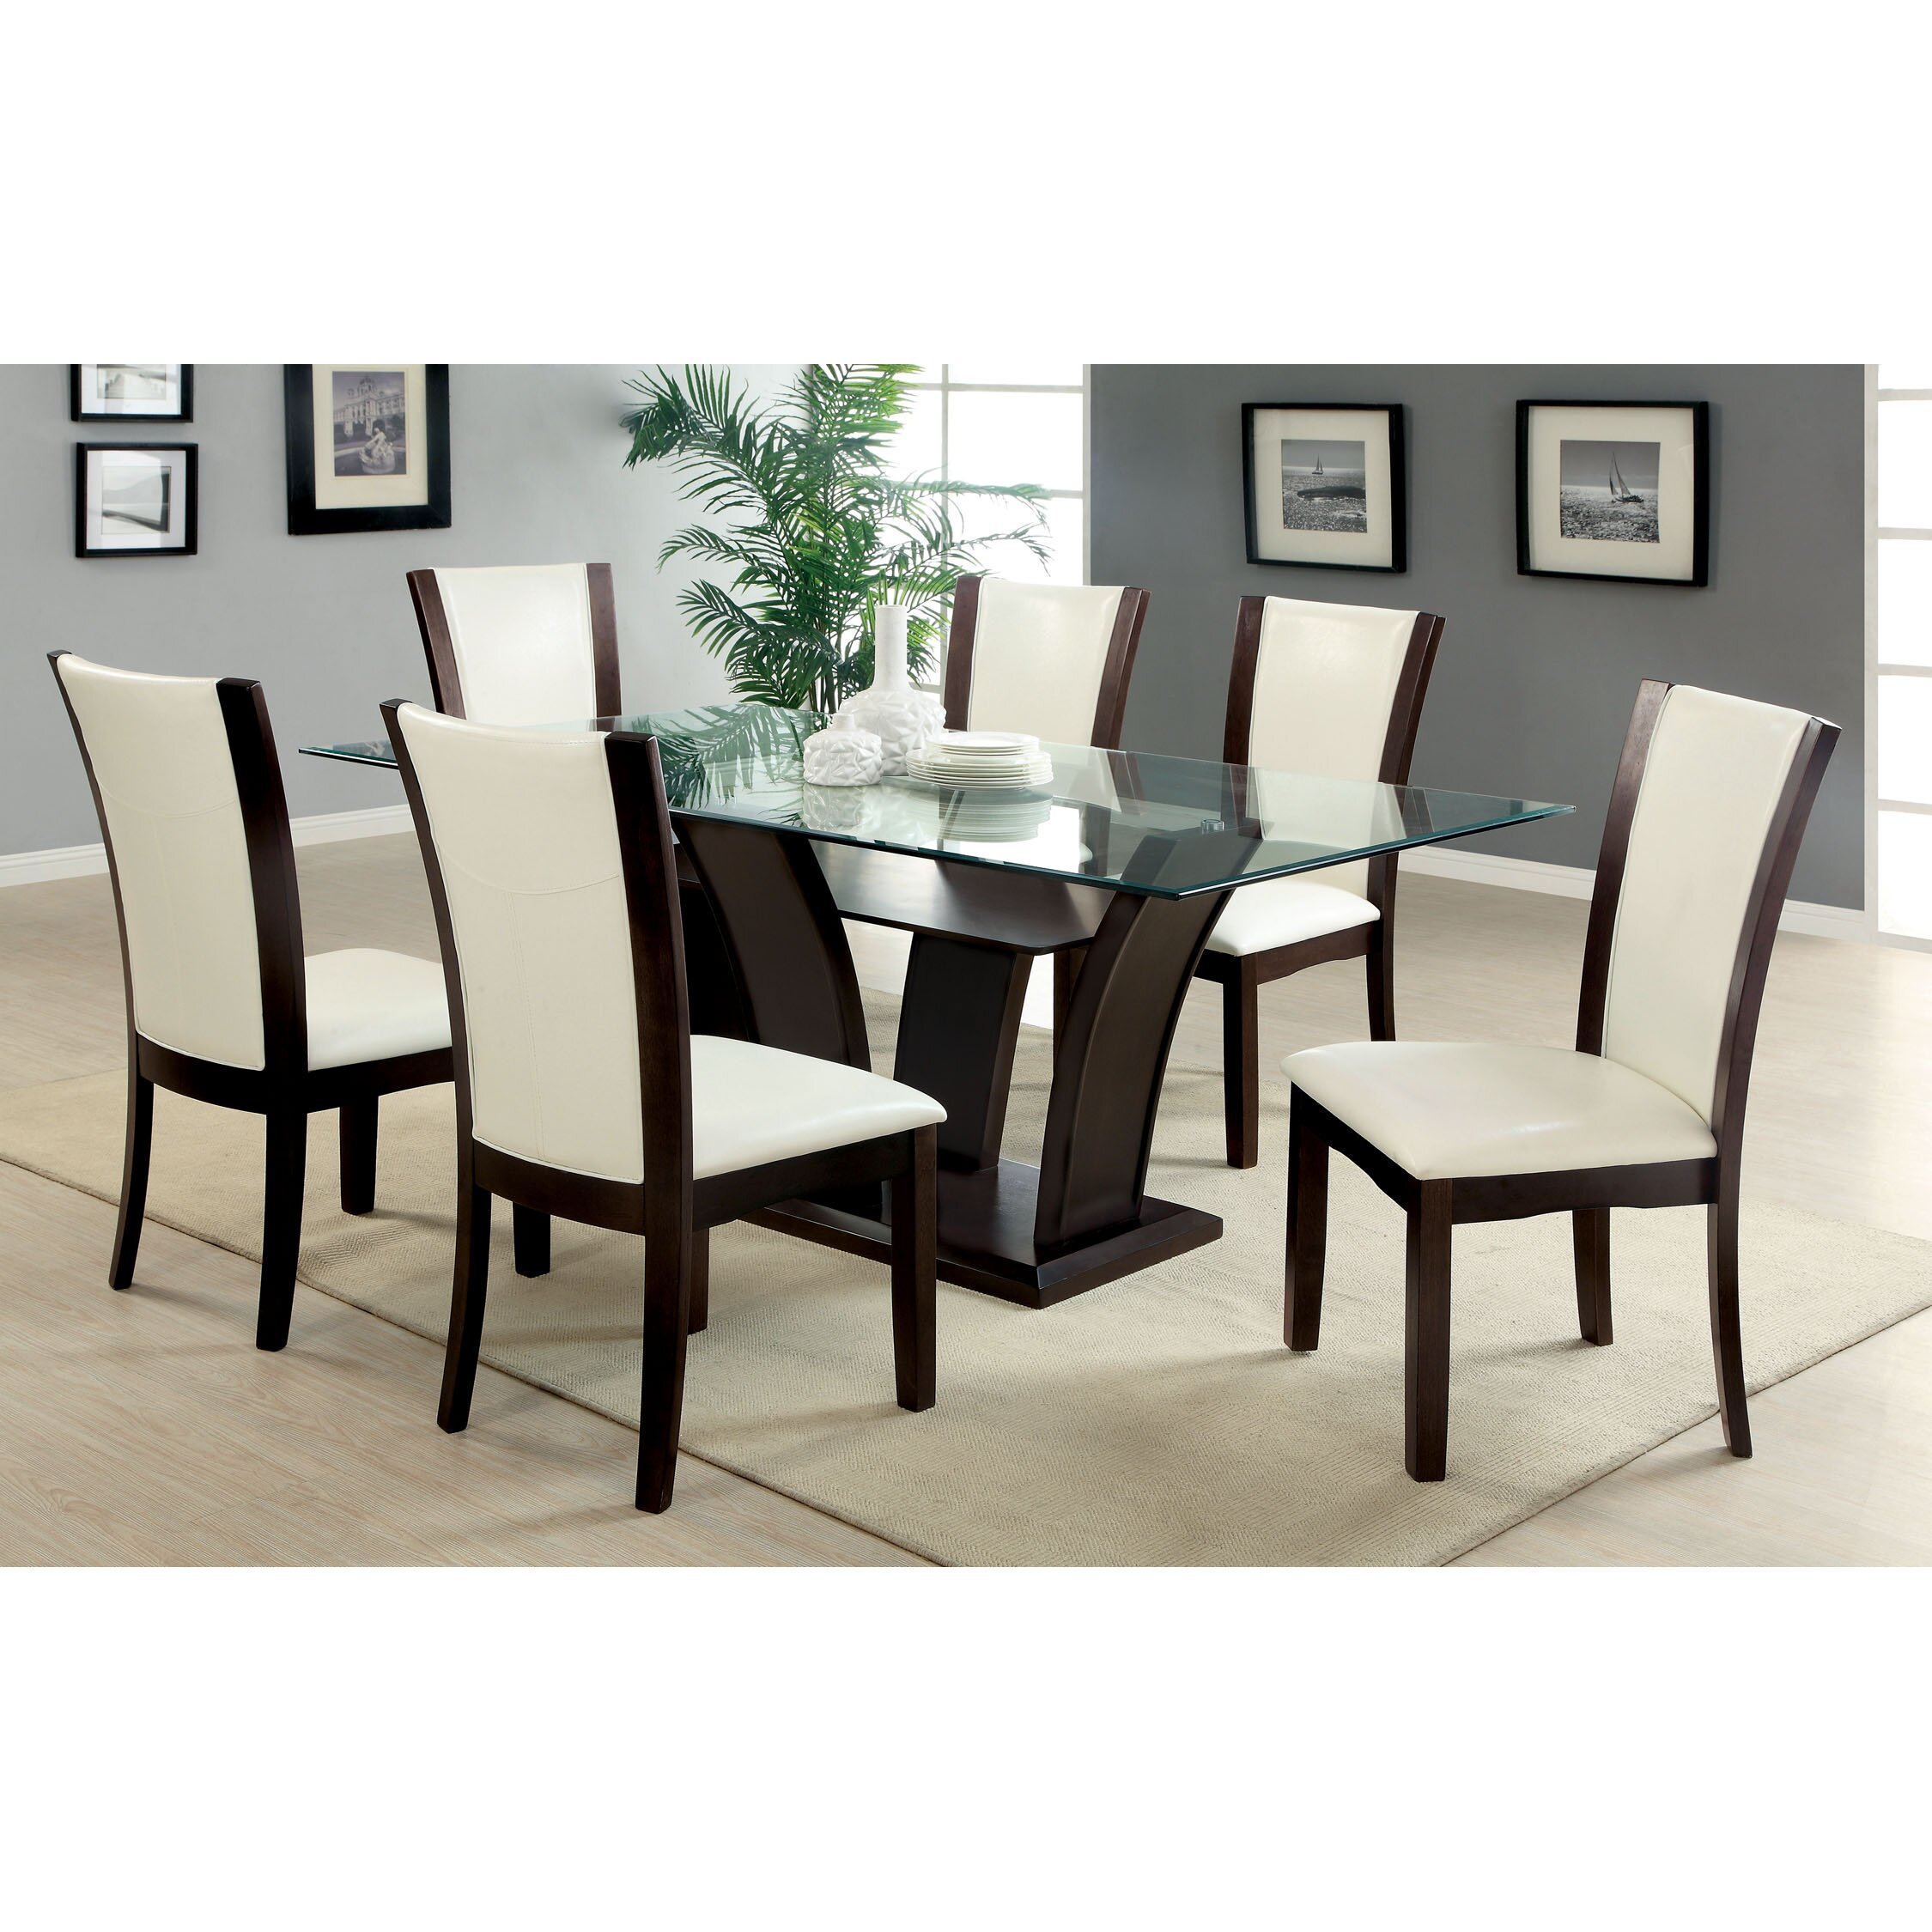 Hokku designs carmilla 7 piece dining set reviews wayfair for Dining room furniture designs